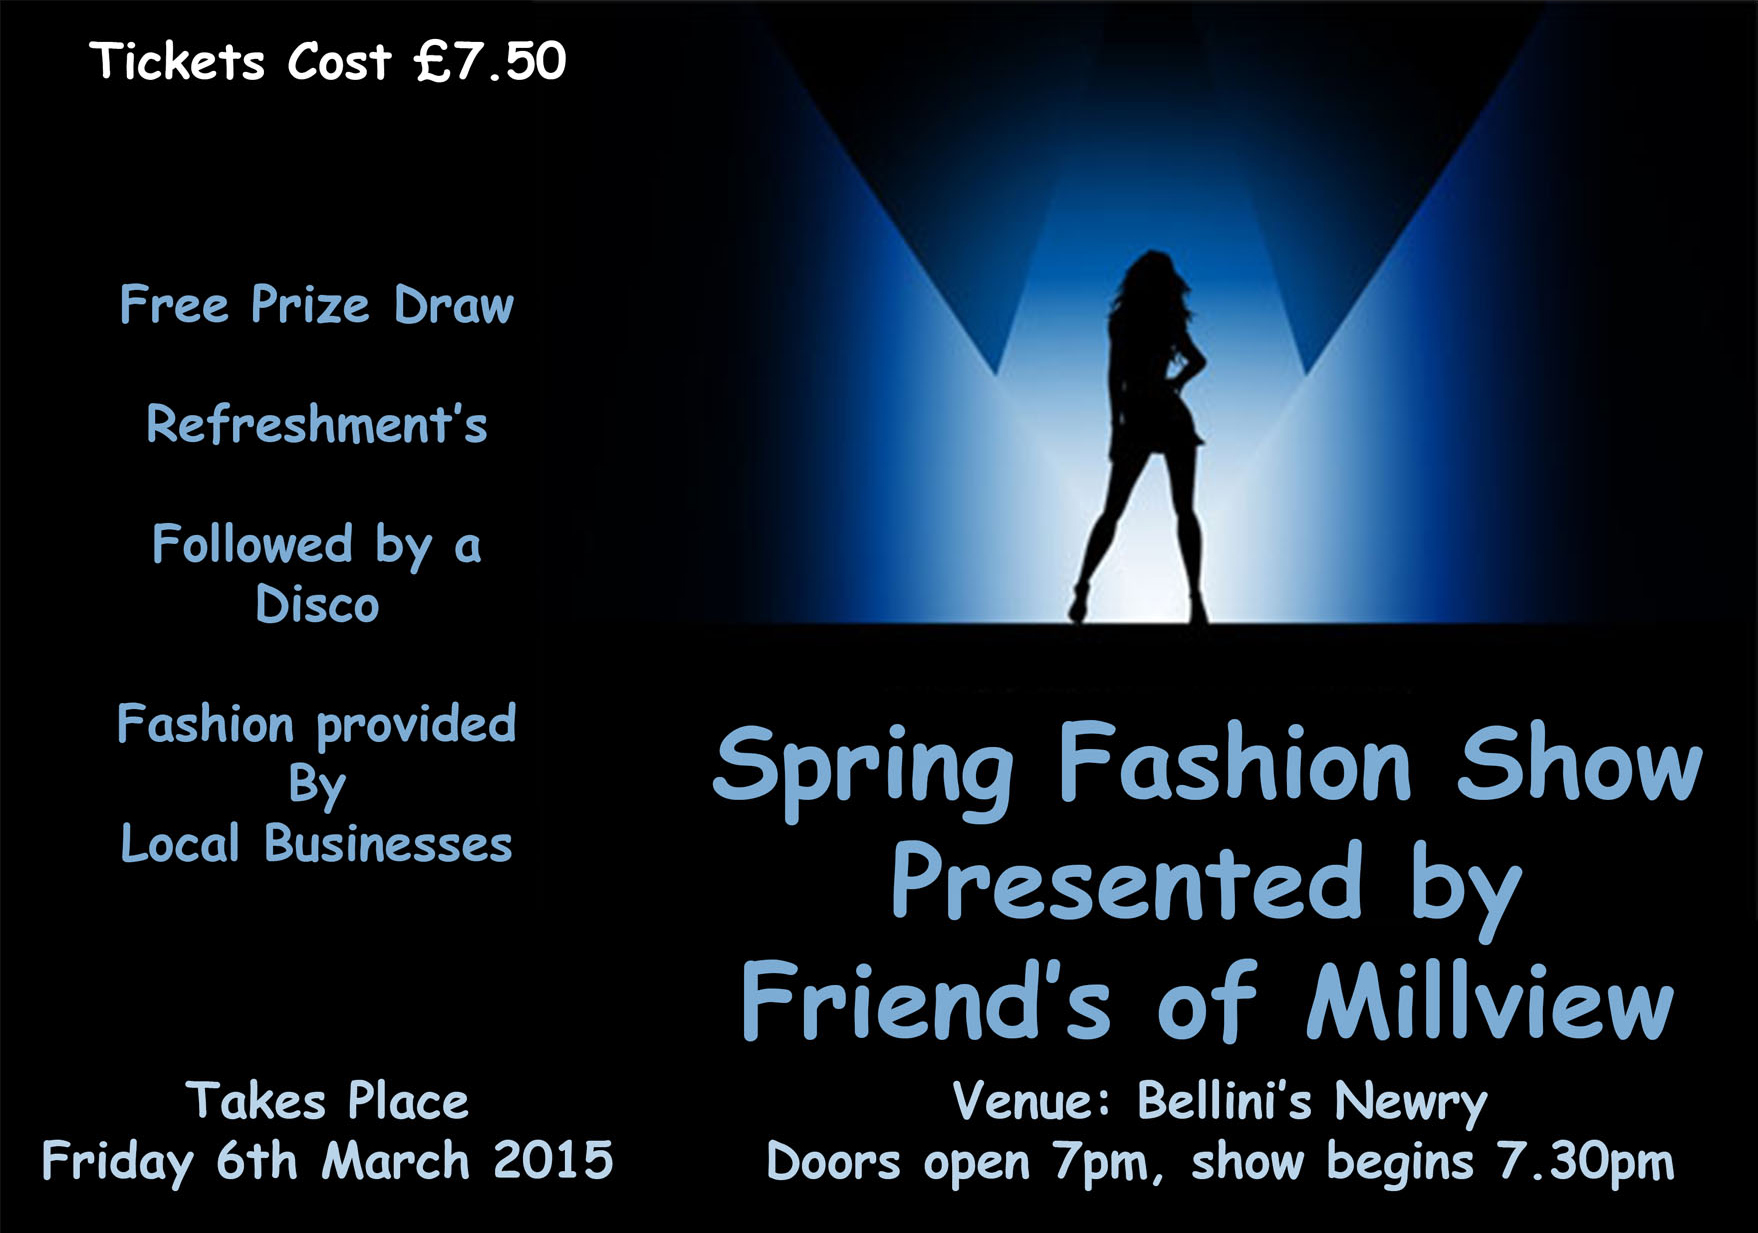 Friends of Millview Spring Fashion Show